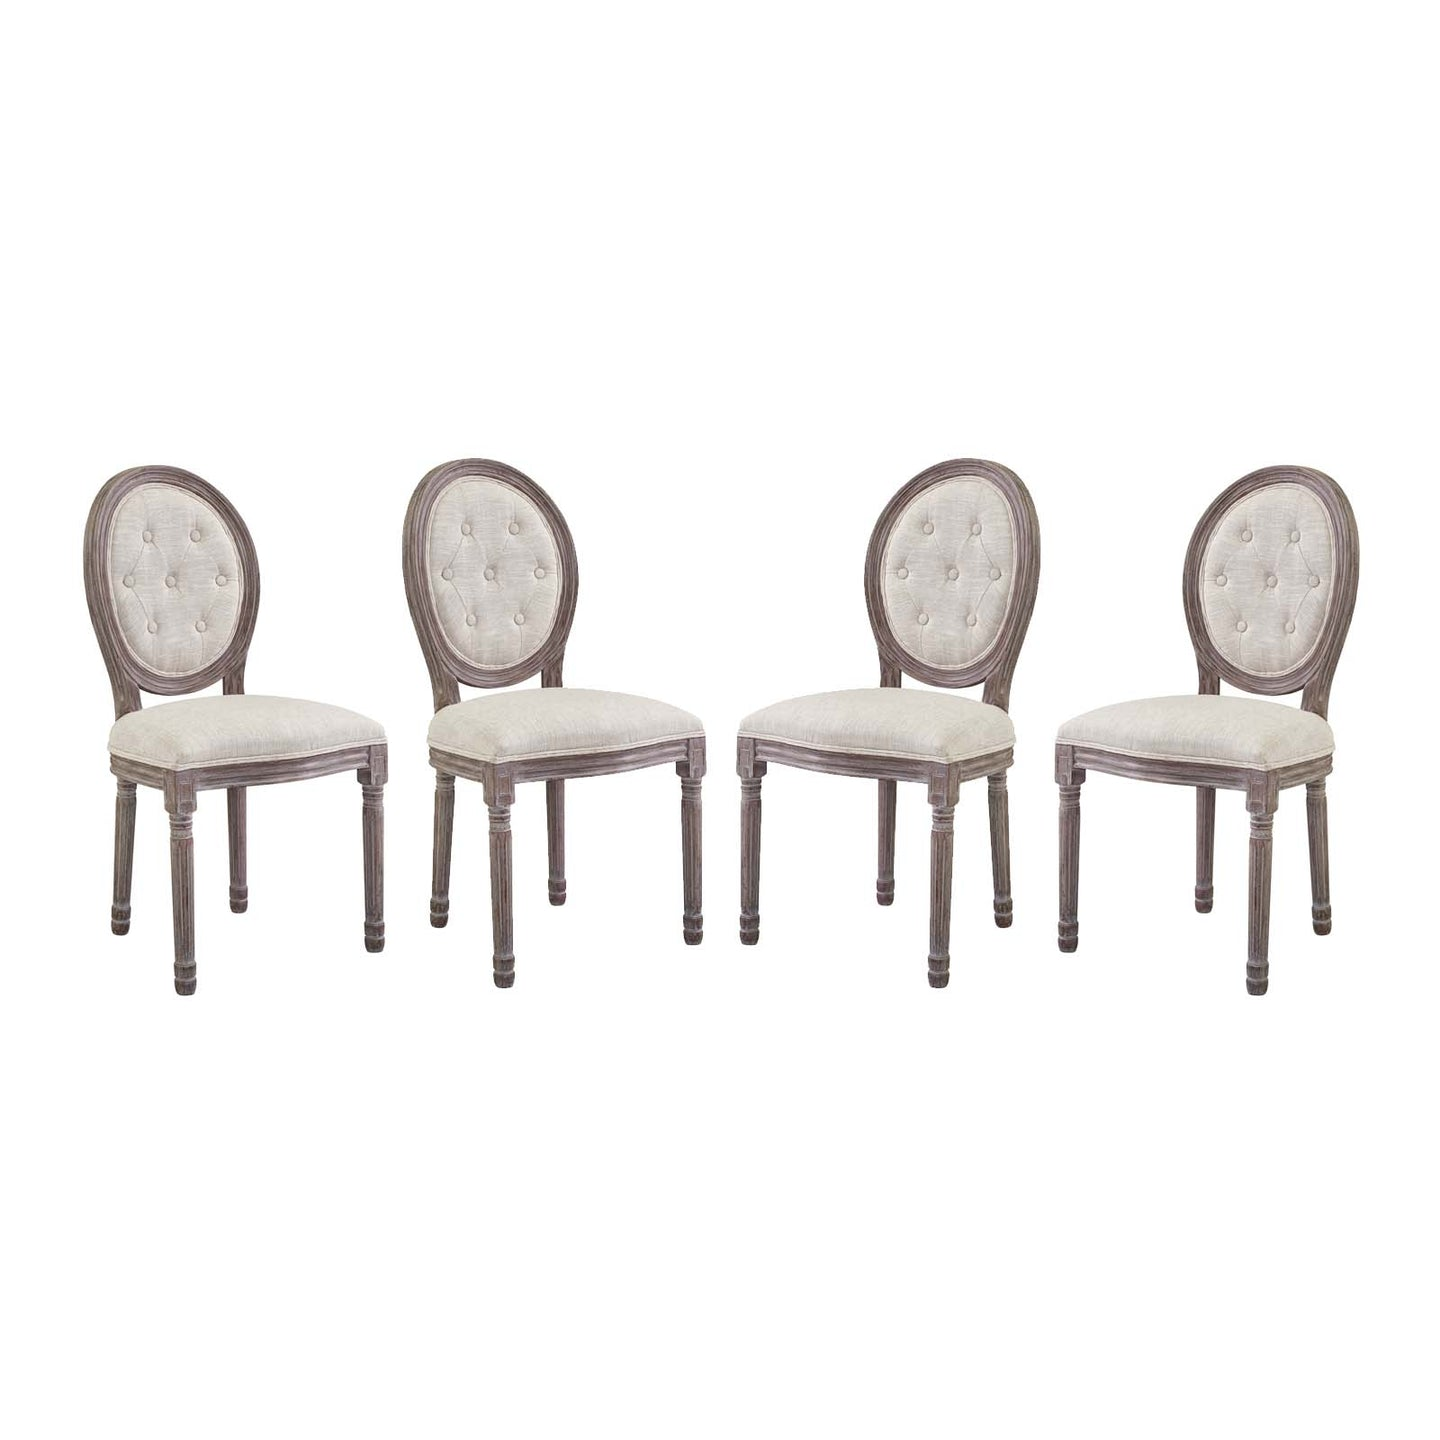 Modway Furniture Modern Arise Dining Side Chair Upholstered Fabric Set of 4 - EEI-3470